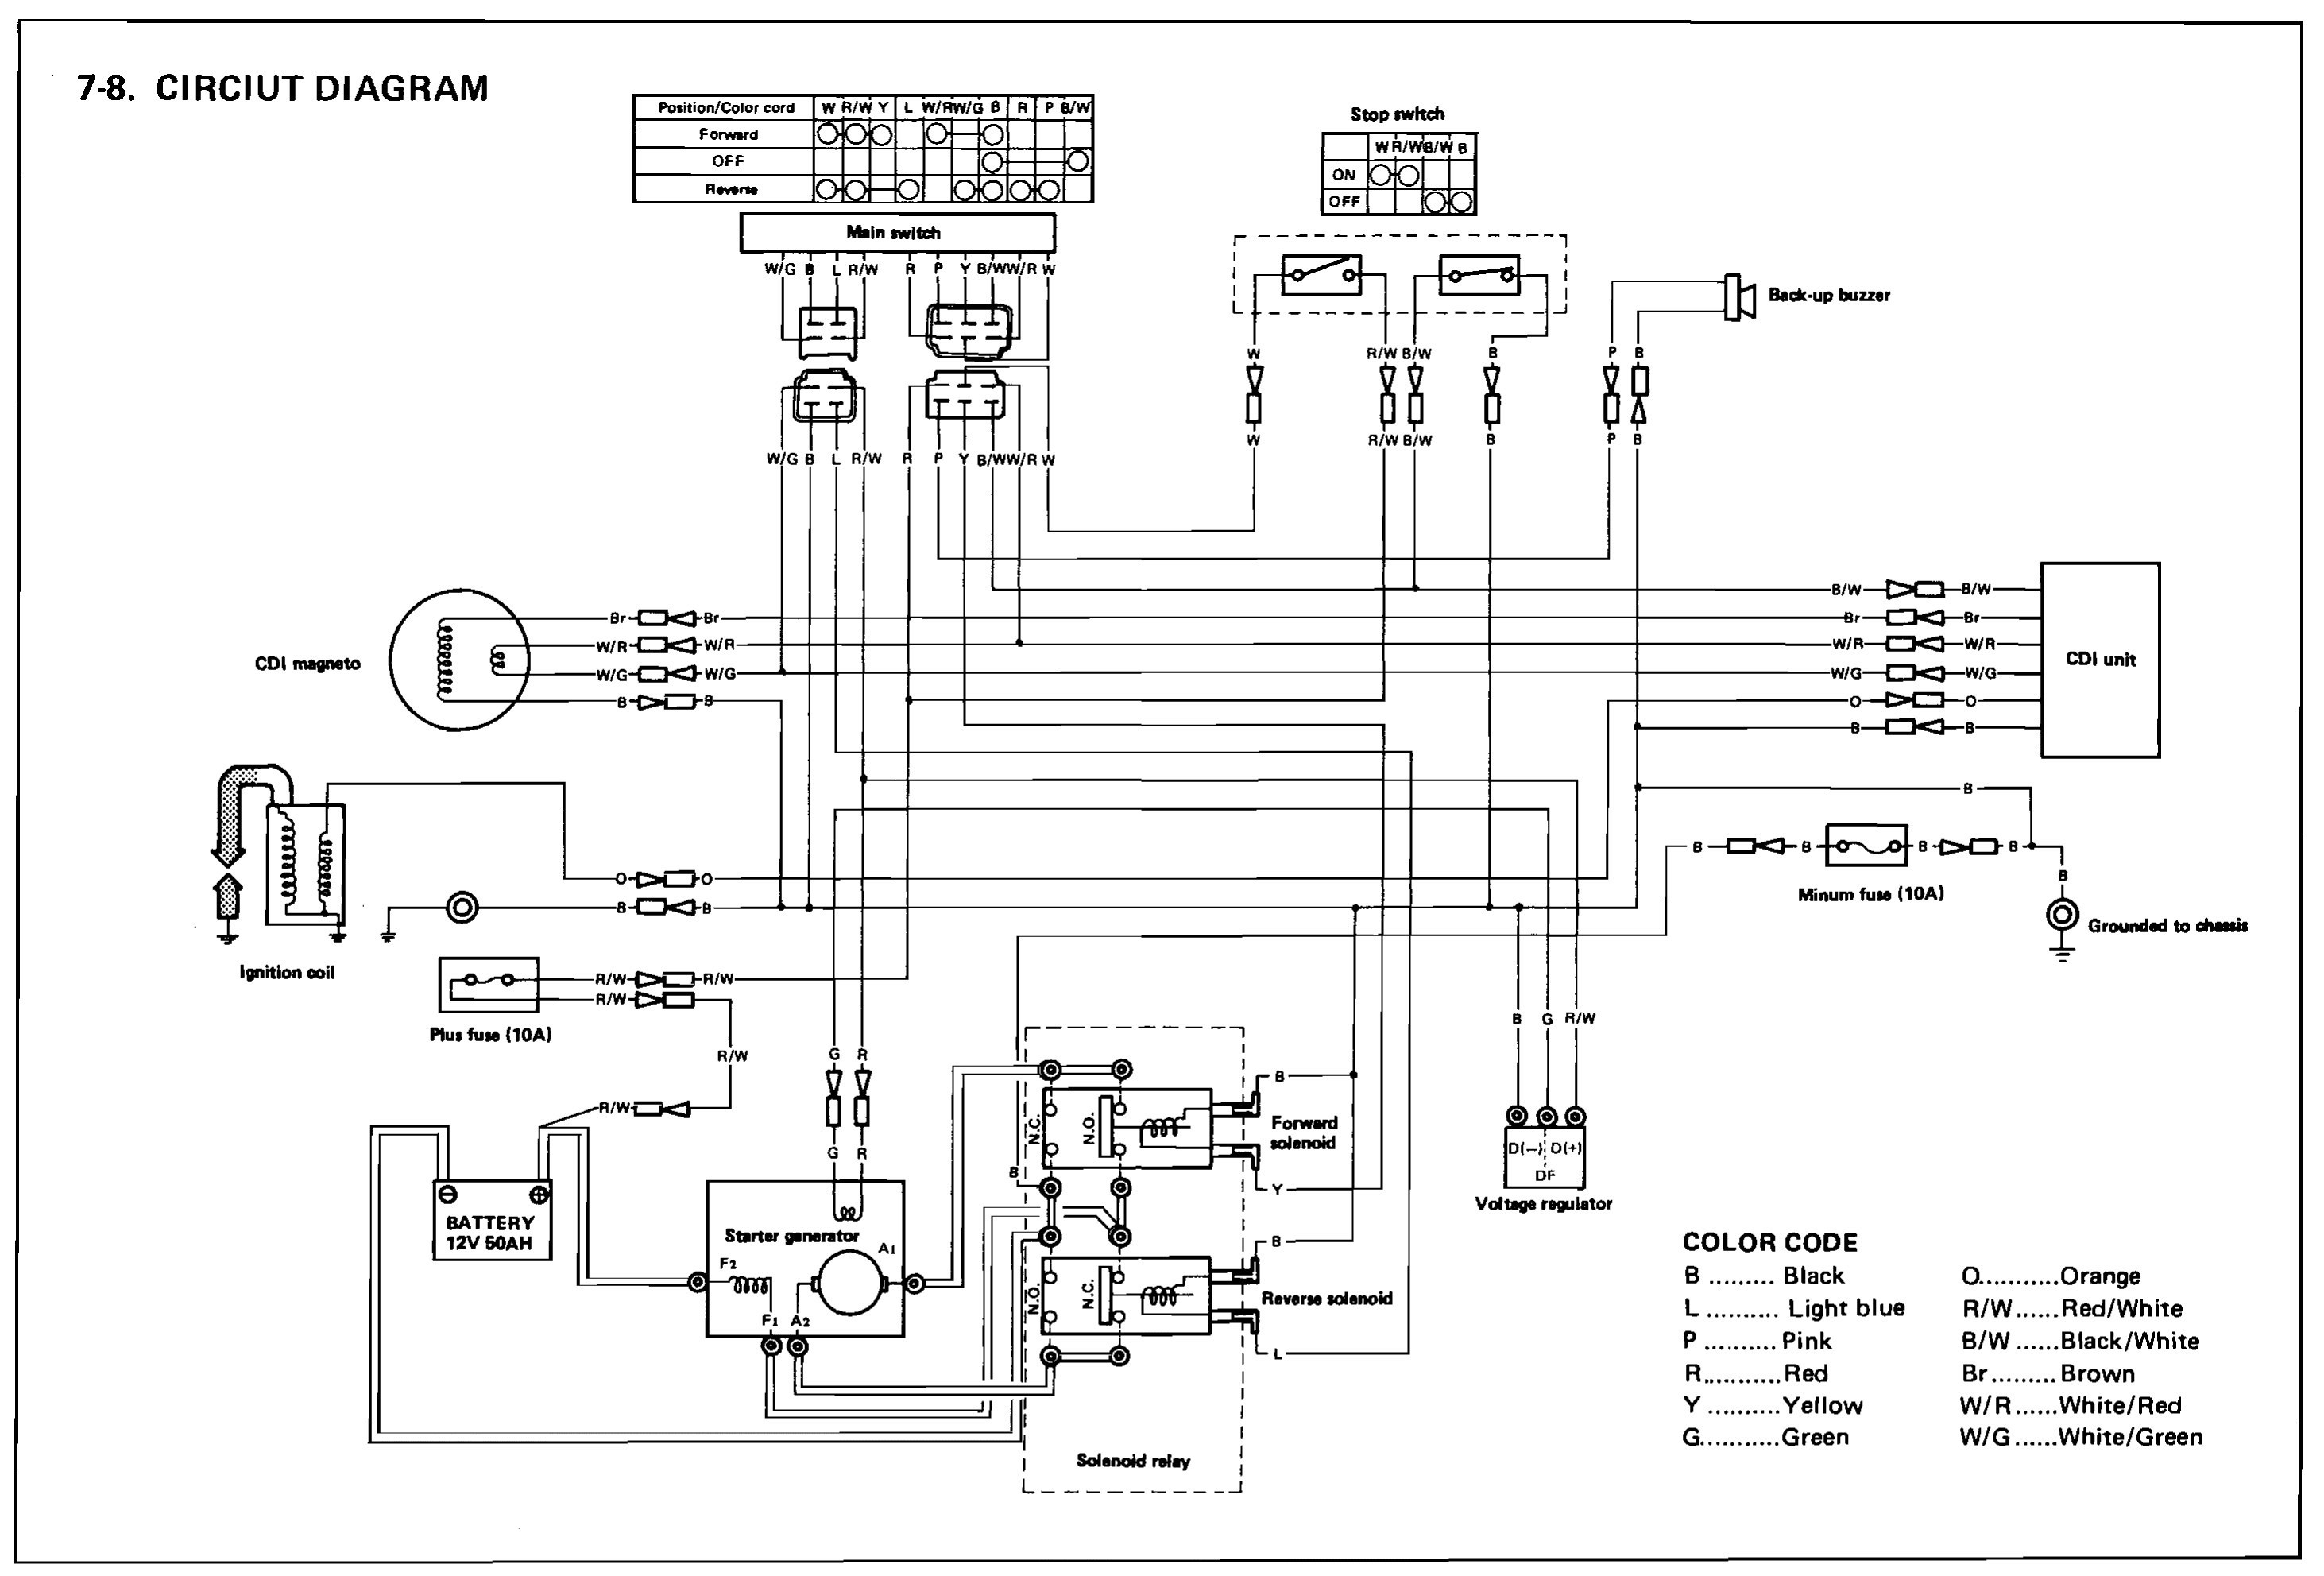 12v Inverter Wiring Diagrams Yamaha Golf Cart Diagram 2000 Coachmen 2014 Prism Schematicwiring Sxv Data